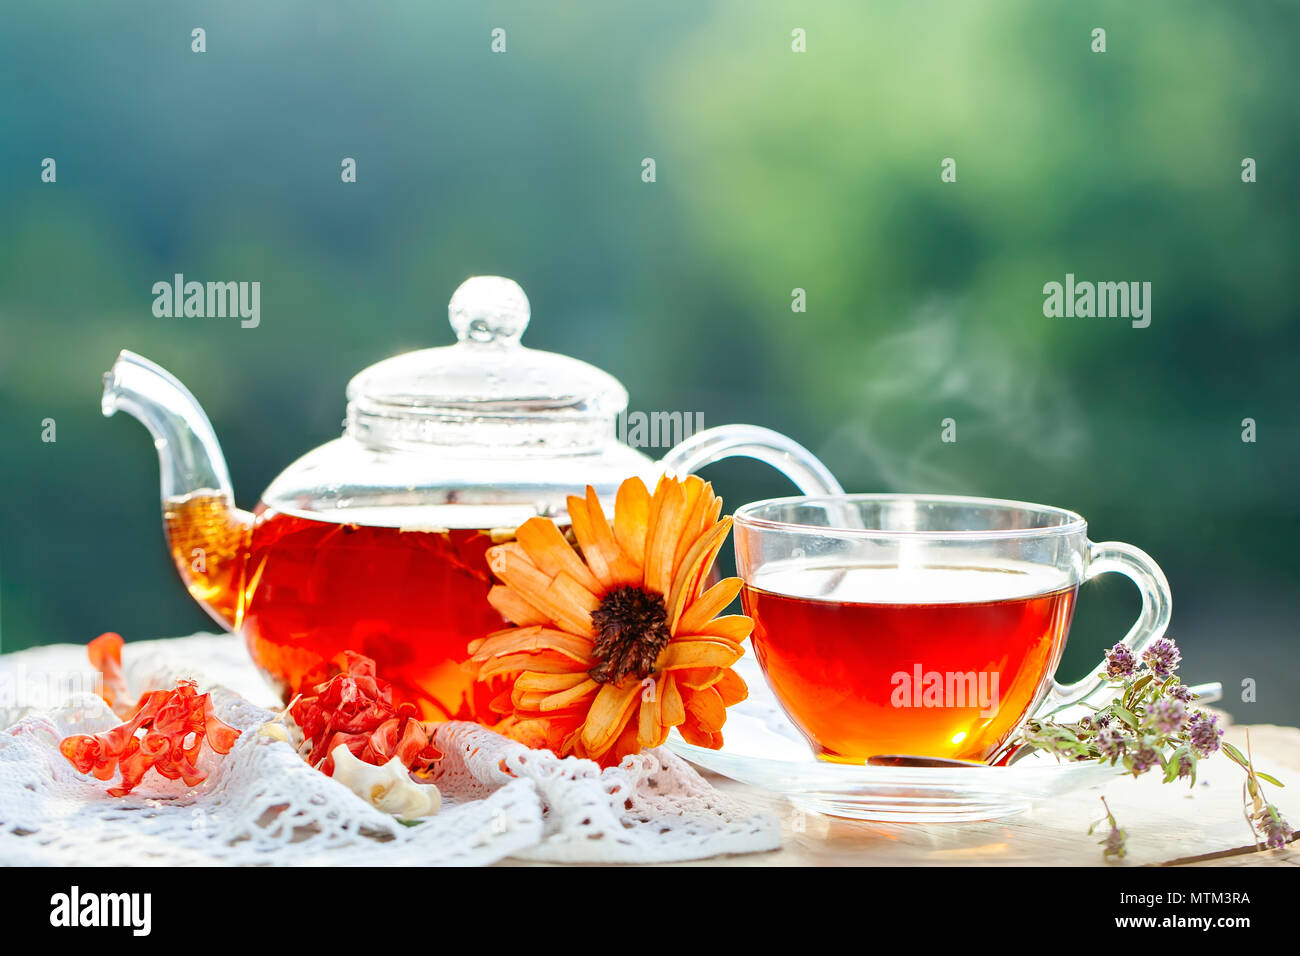 Cup with hot tea with mint and a thyme on a wooden table in a summer garden. Selective focus, Stock Photo